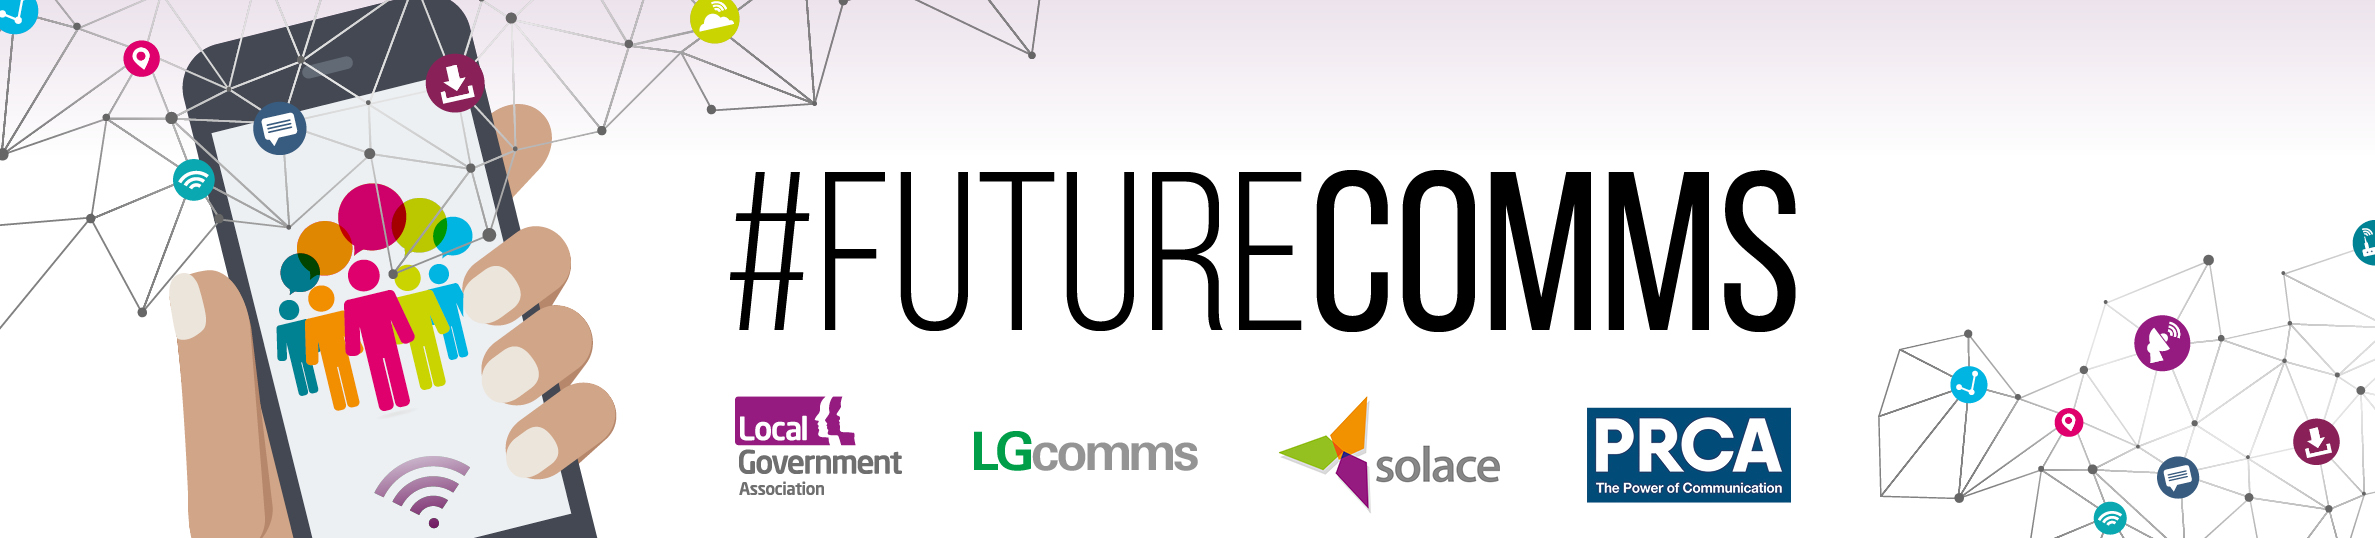 Future Comms digital banner